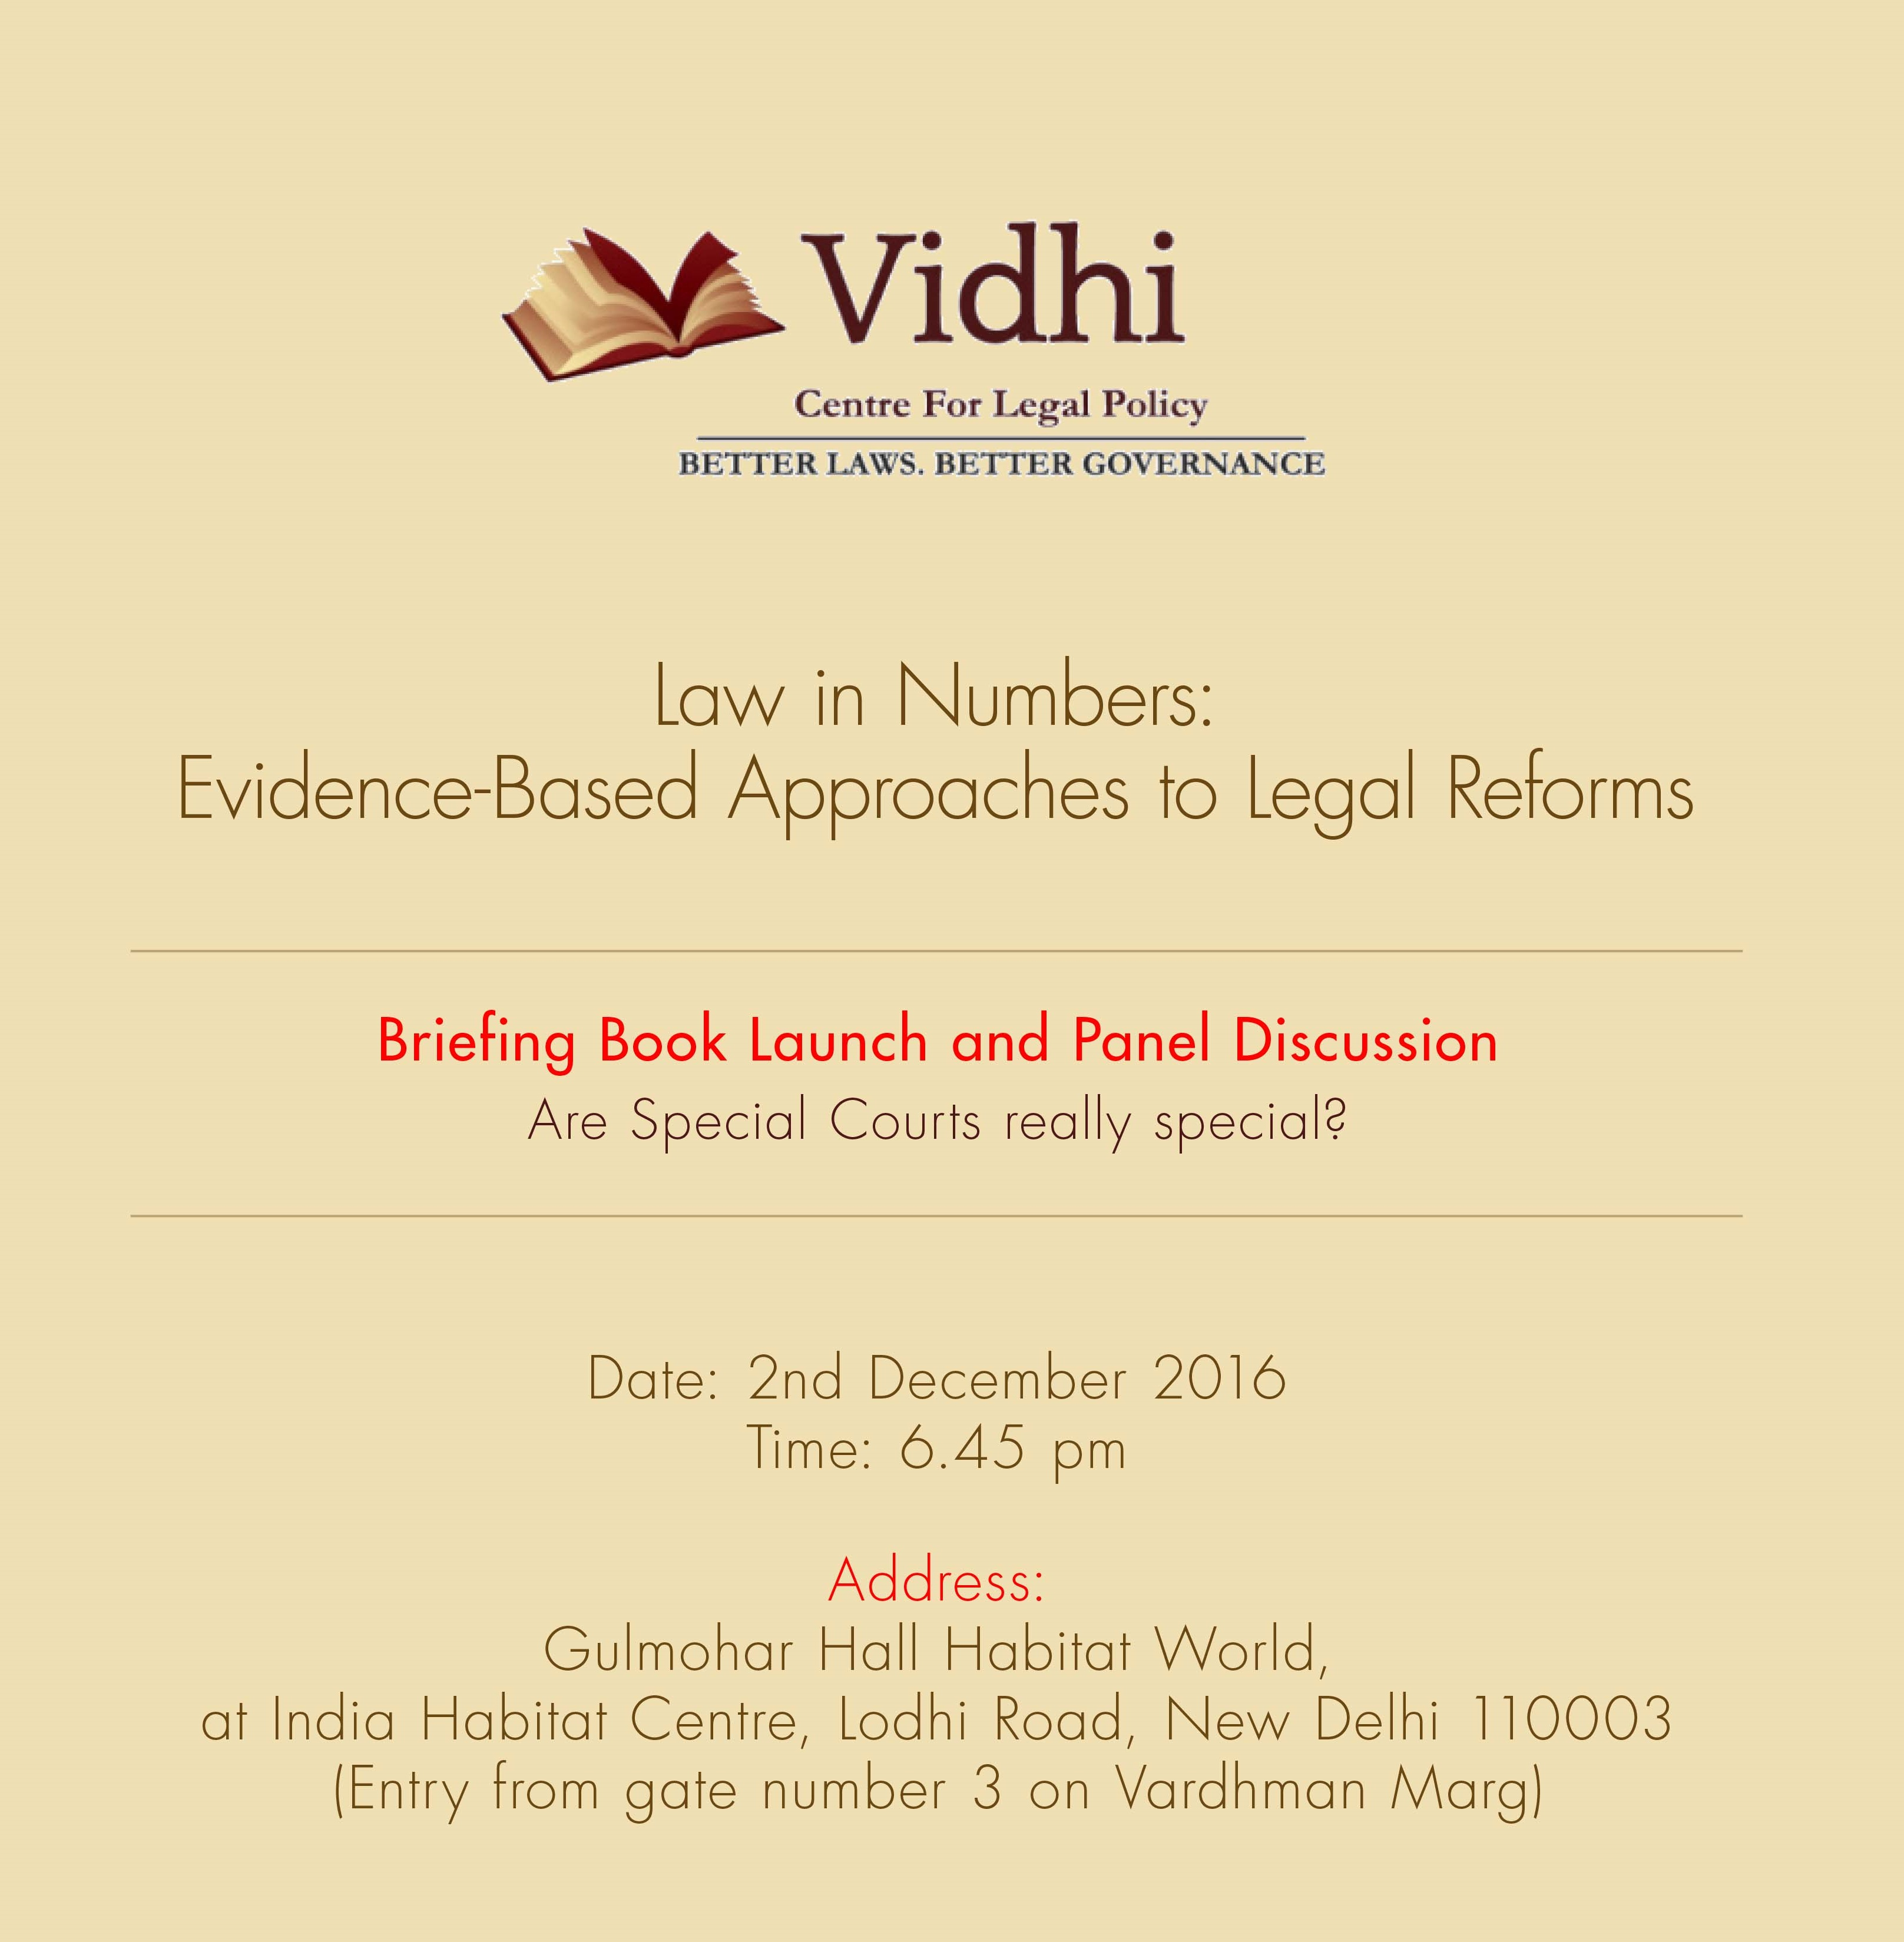 idhi Centre for Legal Policy's Conference on Law in Numbers: Evidence-Based Approaches to Legal Reforms